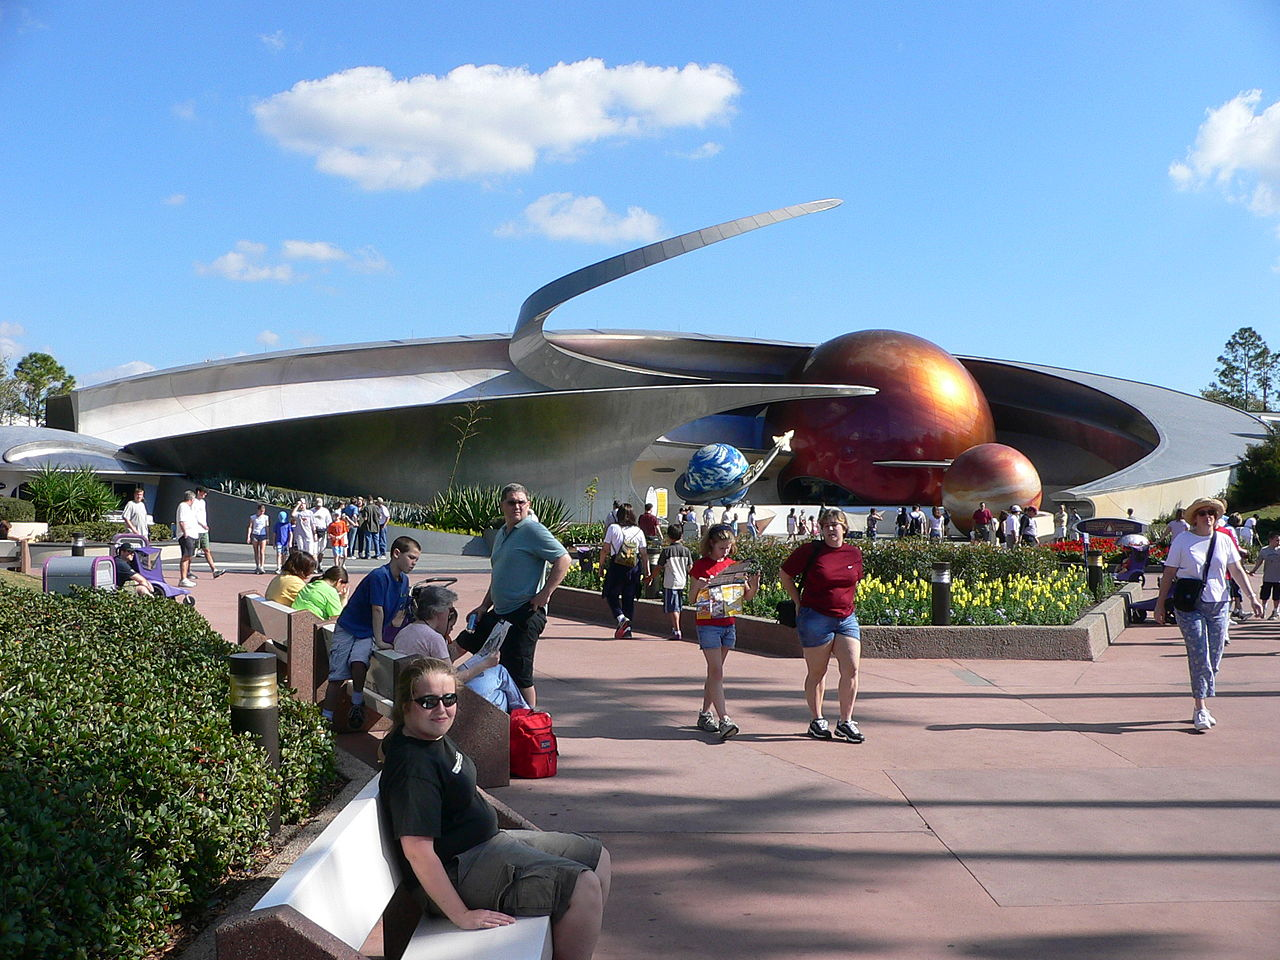 mission space ride at epcot - photo #27